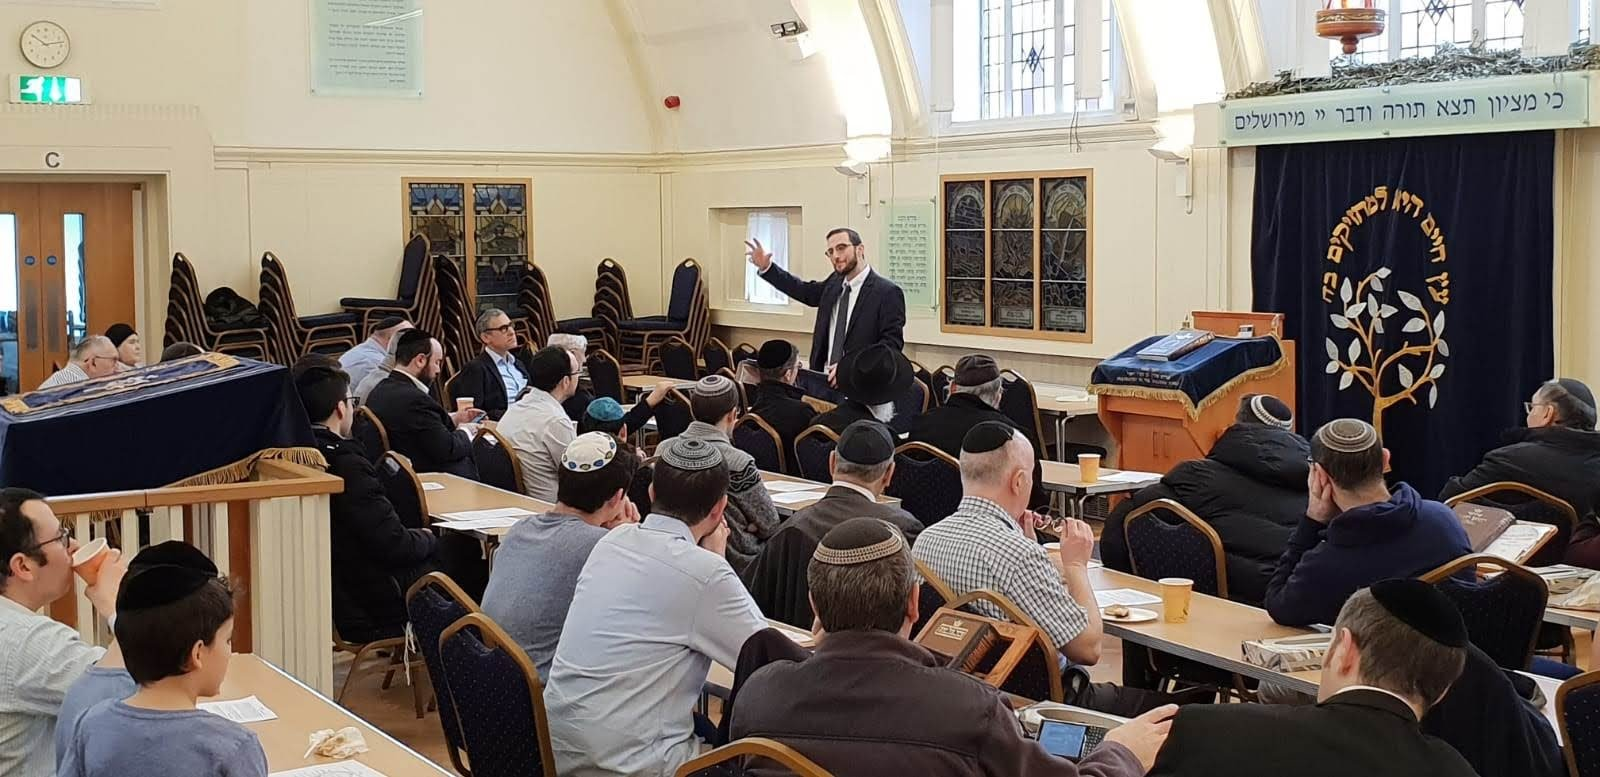 Rabbi Rosner Weekend in London